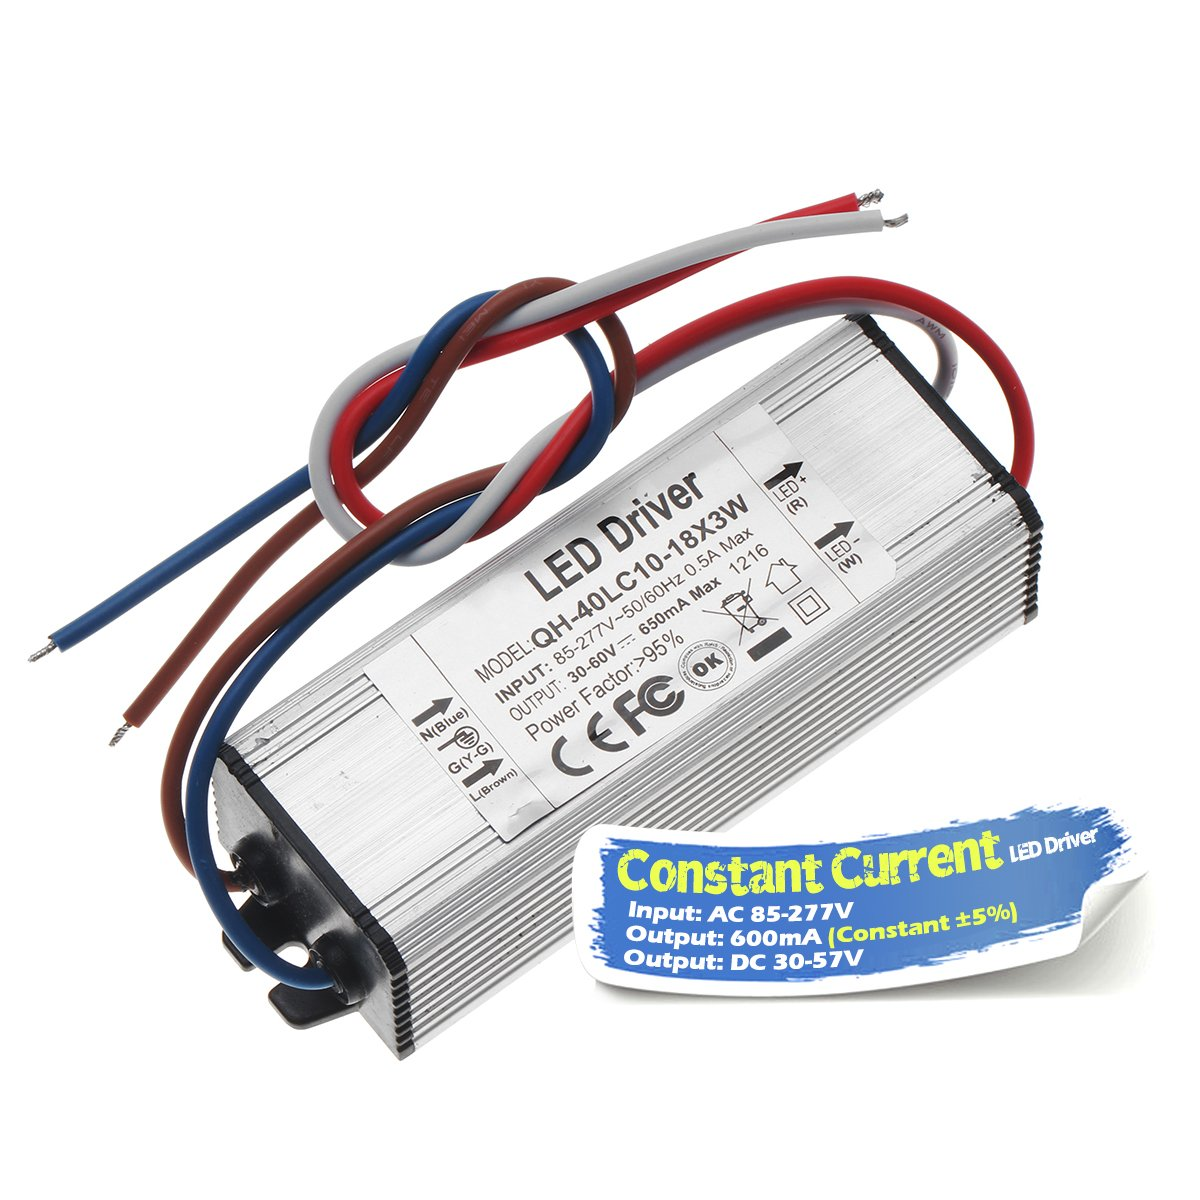 Chanzon Led Driver 600ma Constant Current Output 30v 57v Input 85 Together With 10 Watt Circuit On High 277v Ac Dc 18x3w 20w 30w 36w 45w 54w Ip67 Waterproof Power Supply 600 Ma